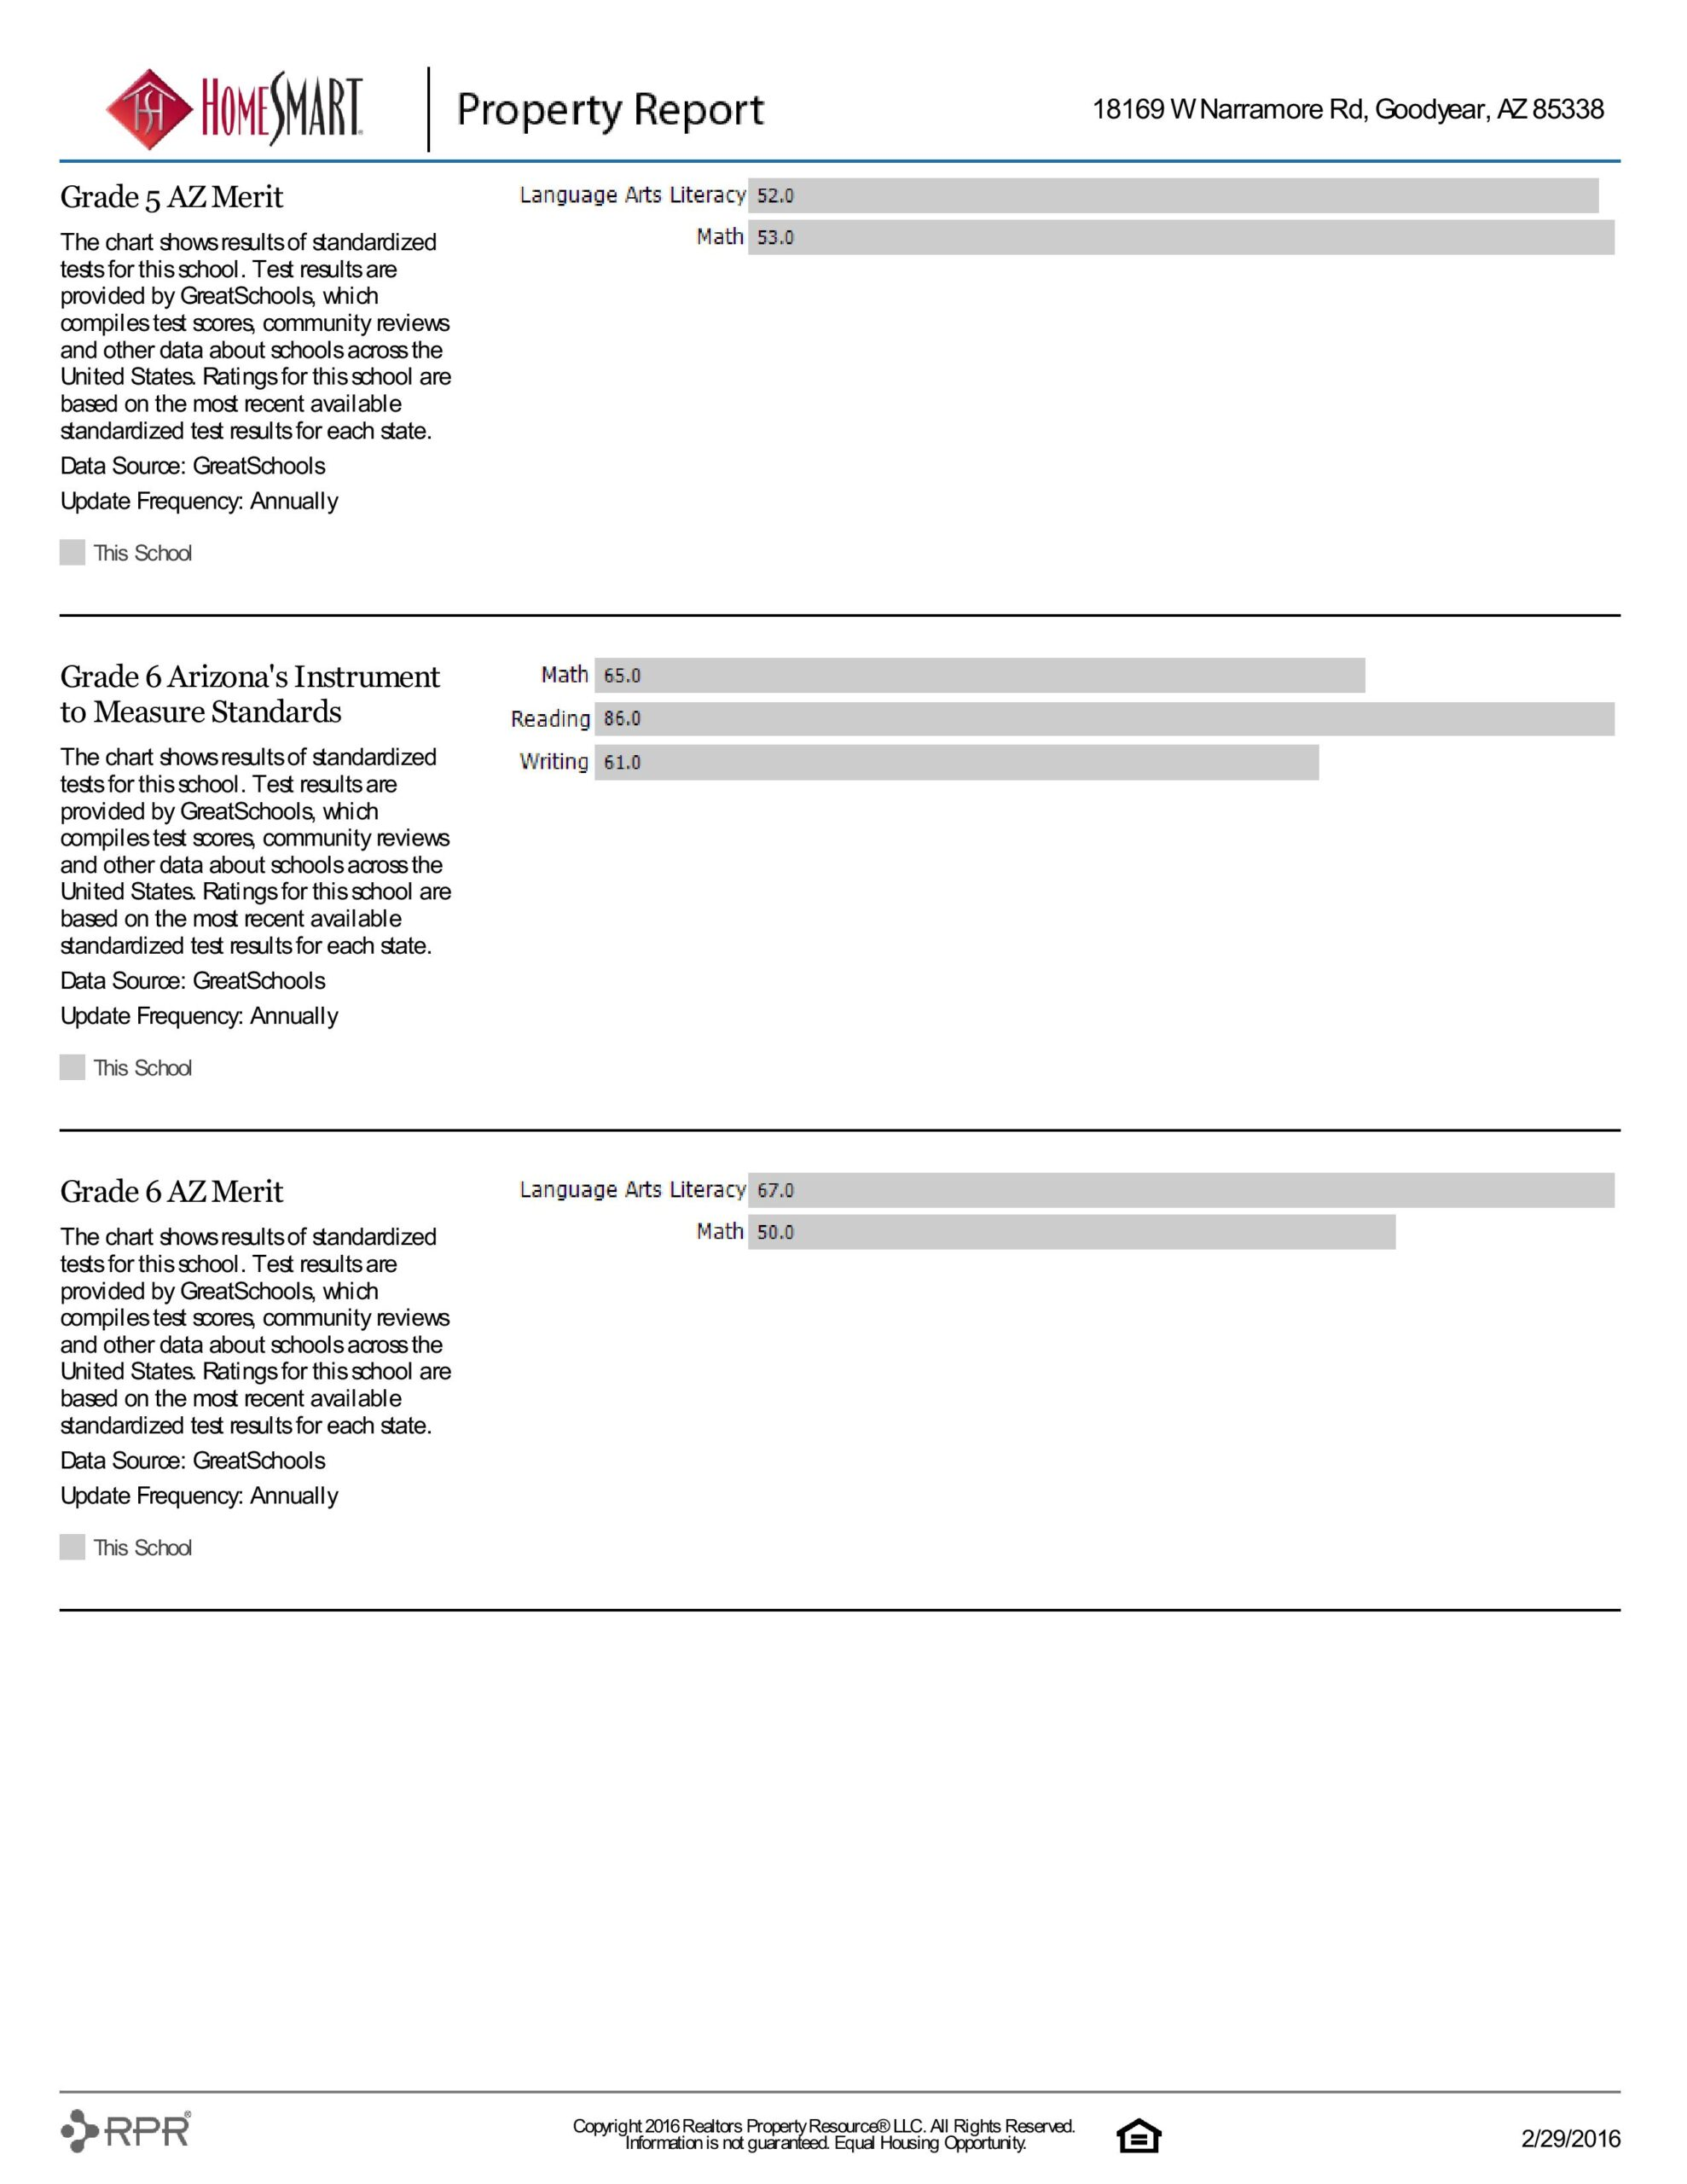 18169 W NARRAMORE RD PROPERTY REPORT-page-041